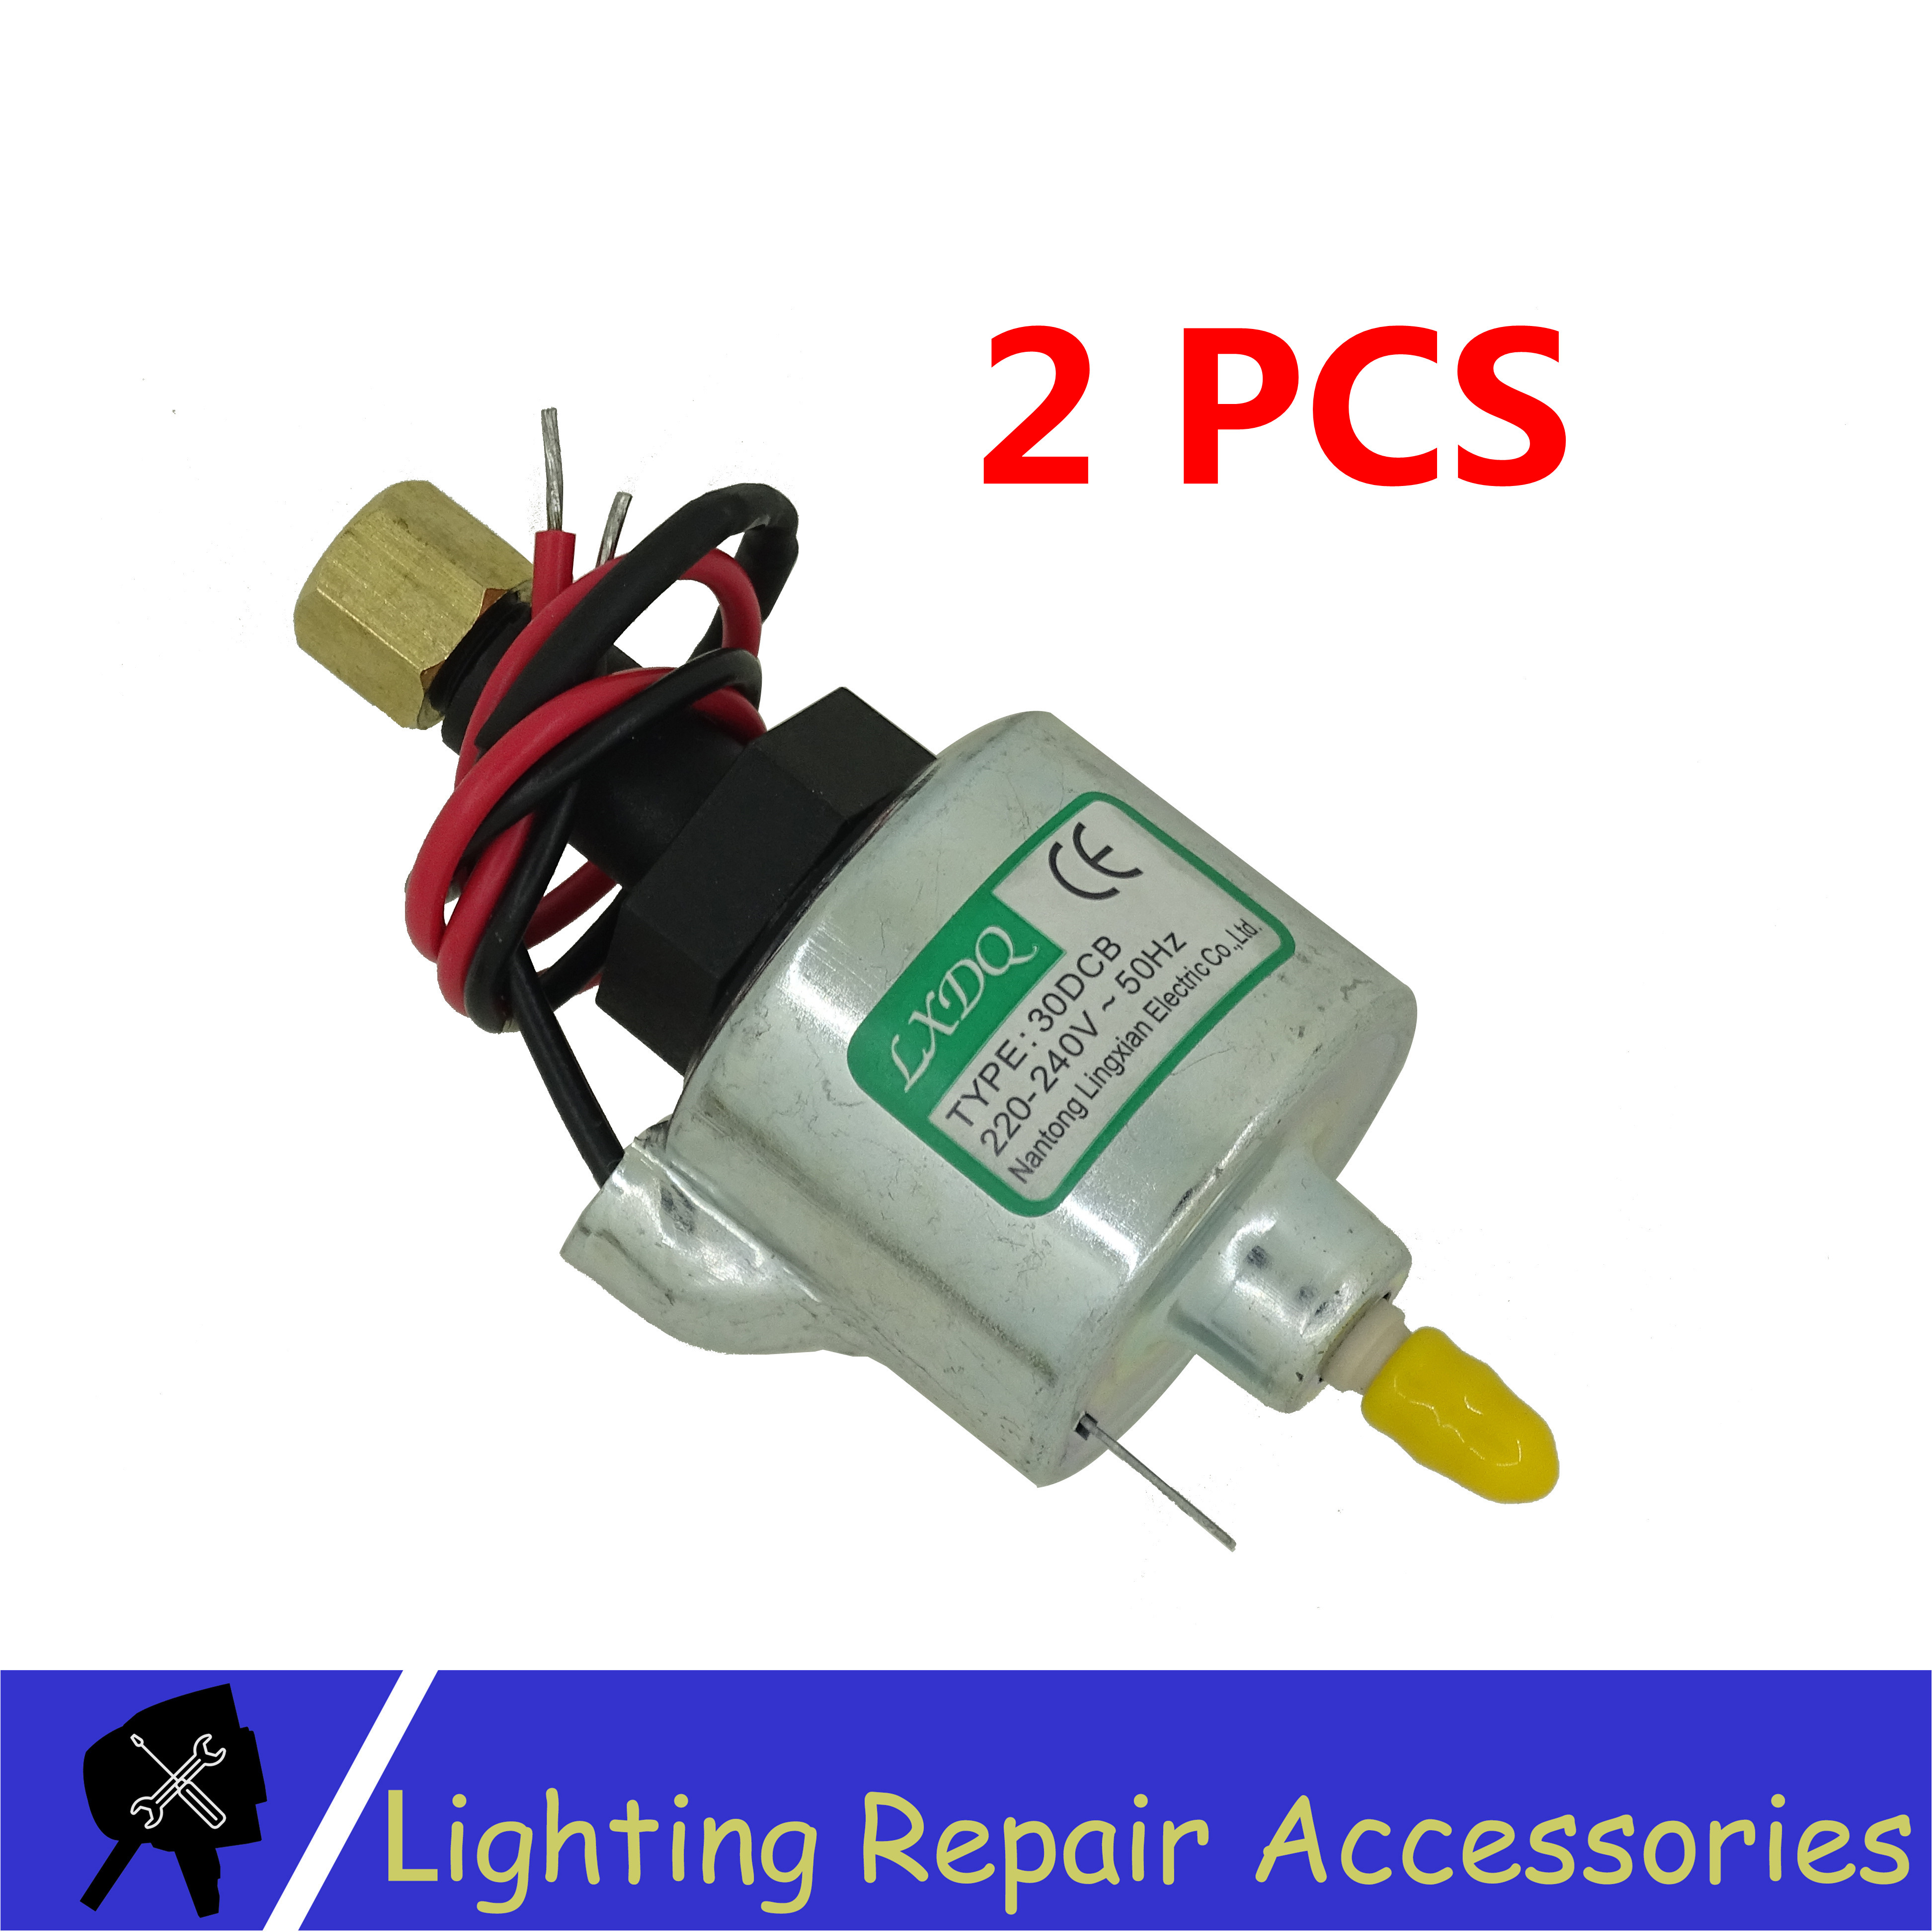 2Pcs/lots 30DCB 18W Straight Oil Pump For 400w 600w 900w Fog Machine Sucker Rod Pumping Electromagnetic Pump For Smoke MachineStage Lighting Effect   -